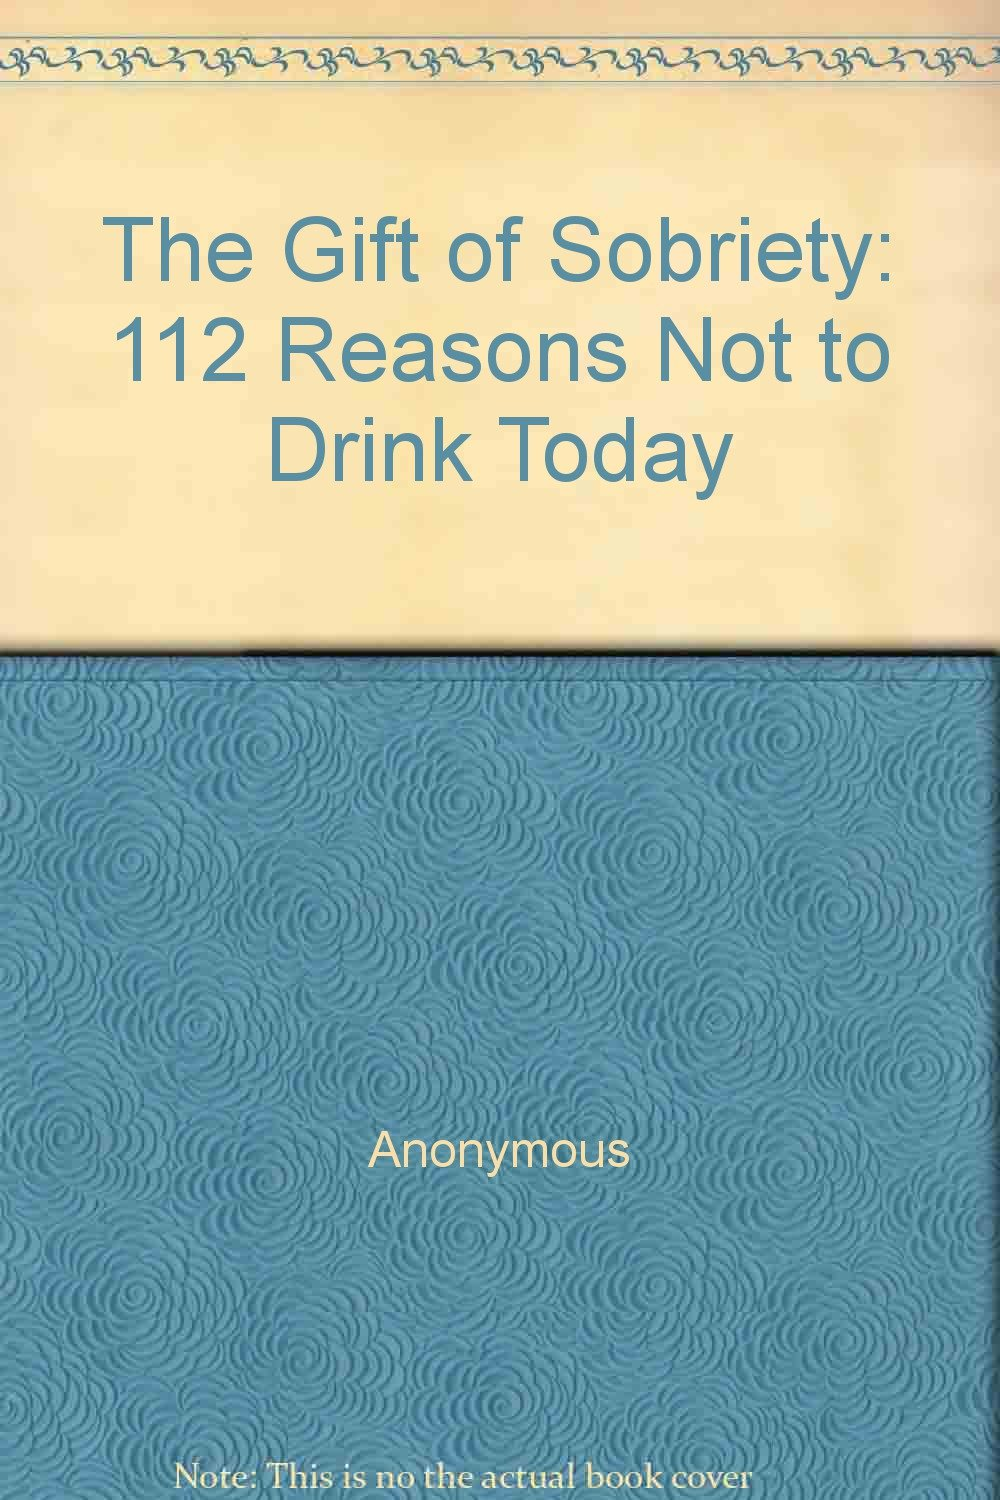 Gift Sobriety 112 Reasons Drink